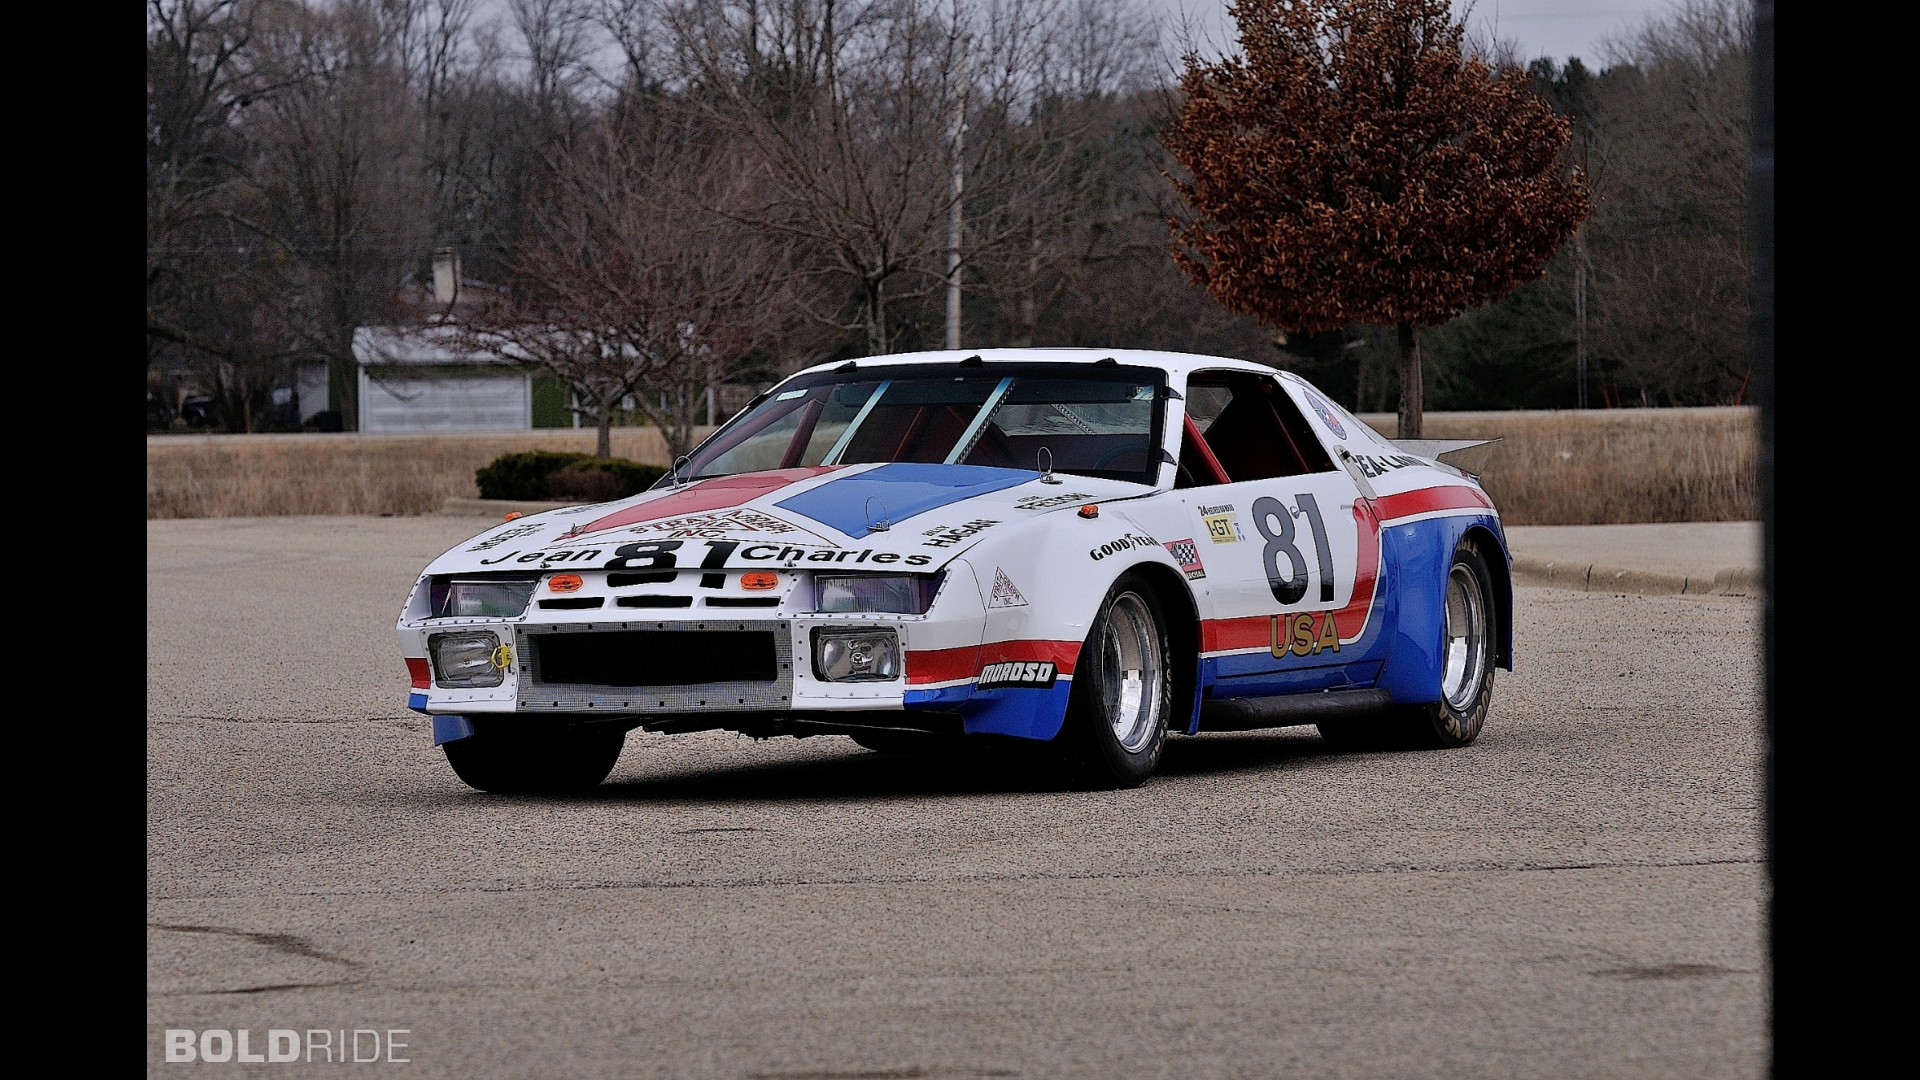 Chevrolet Camaro Le Mans Race Car